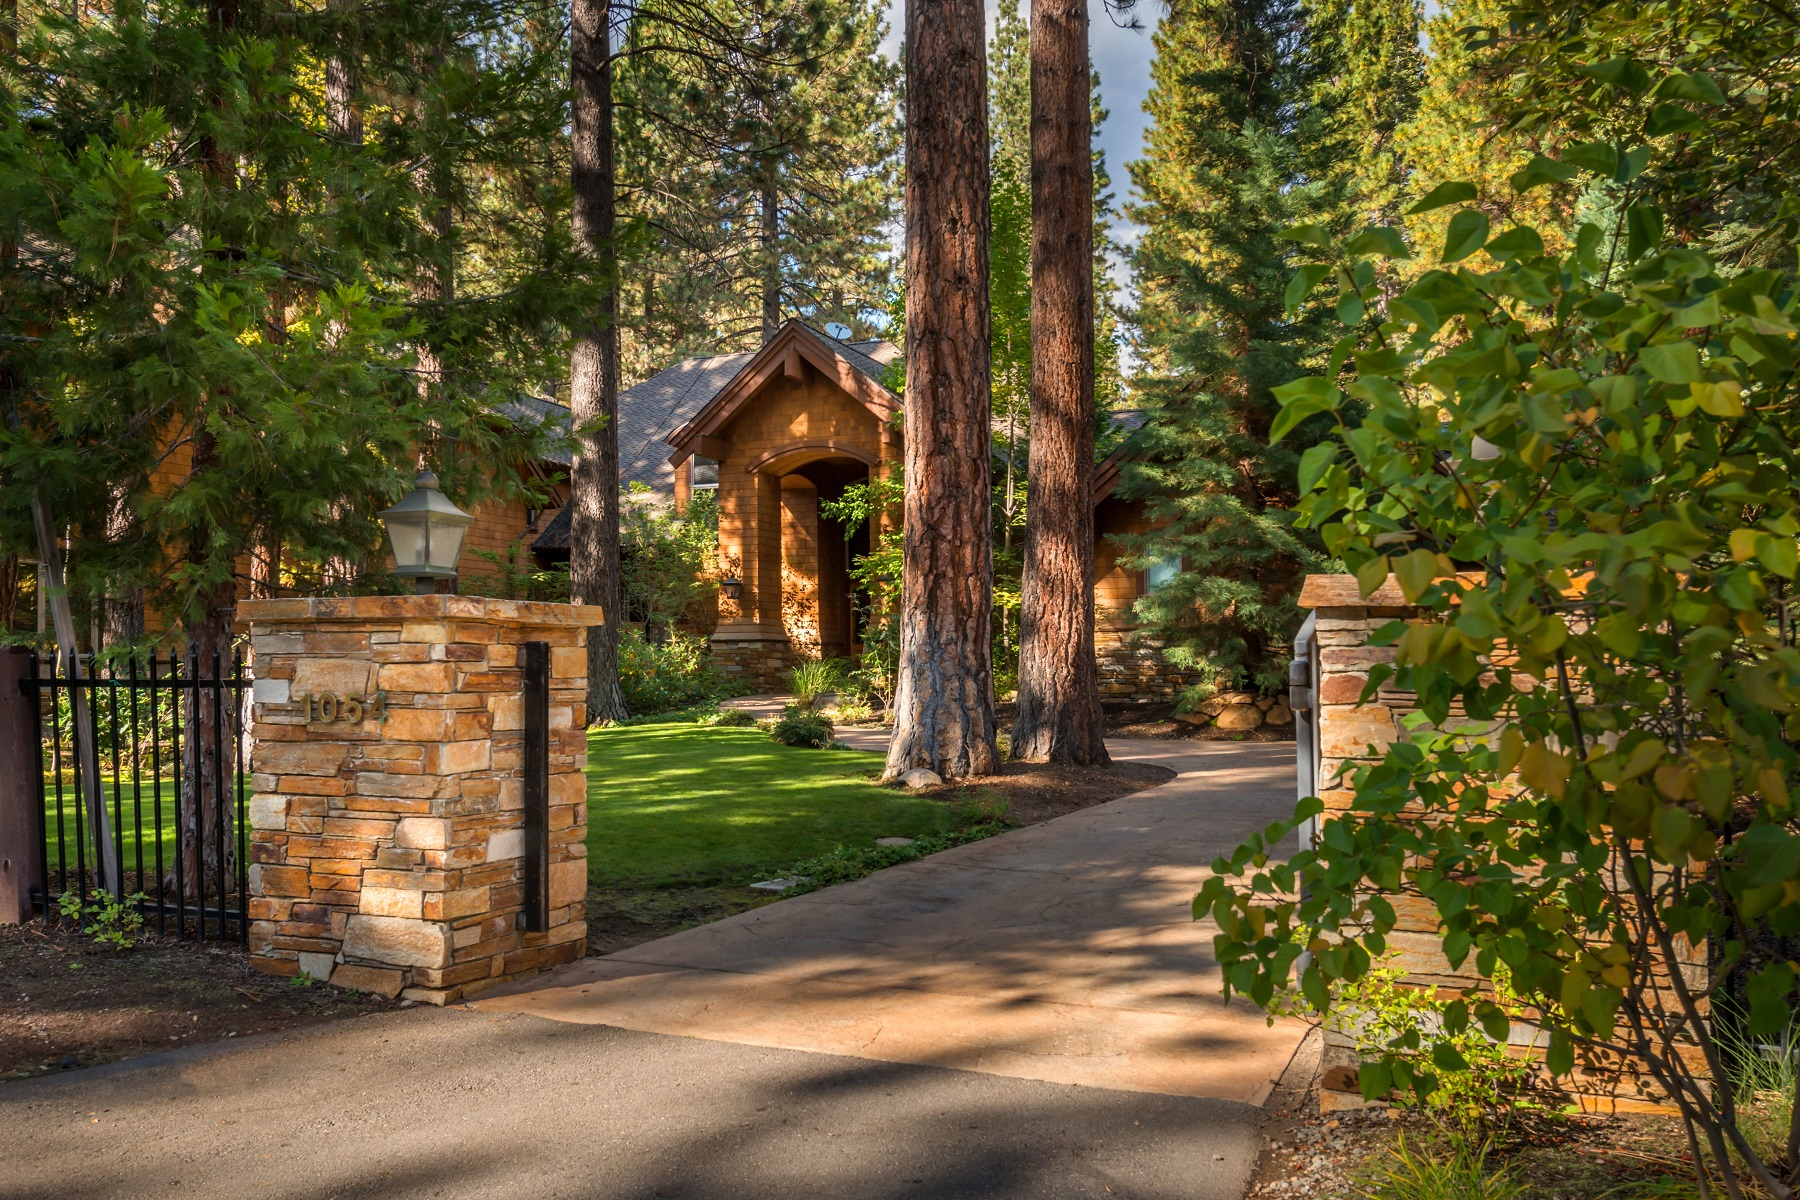 Single Family Home for Active at 1054 Lakeshore Blvd. Incline Village, Nevada 89451 United States